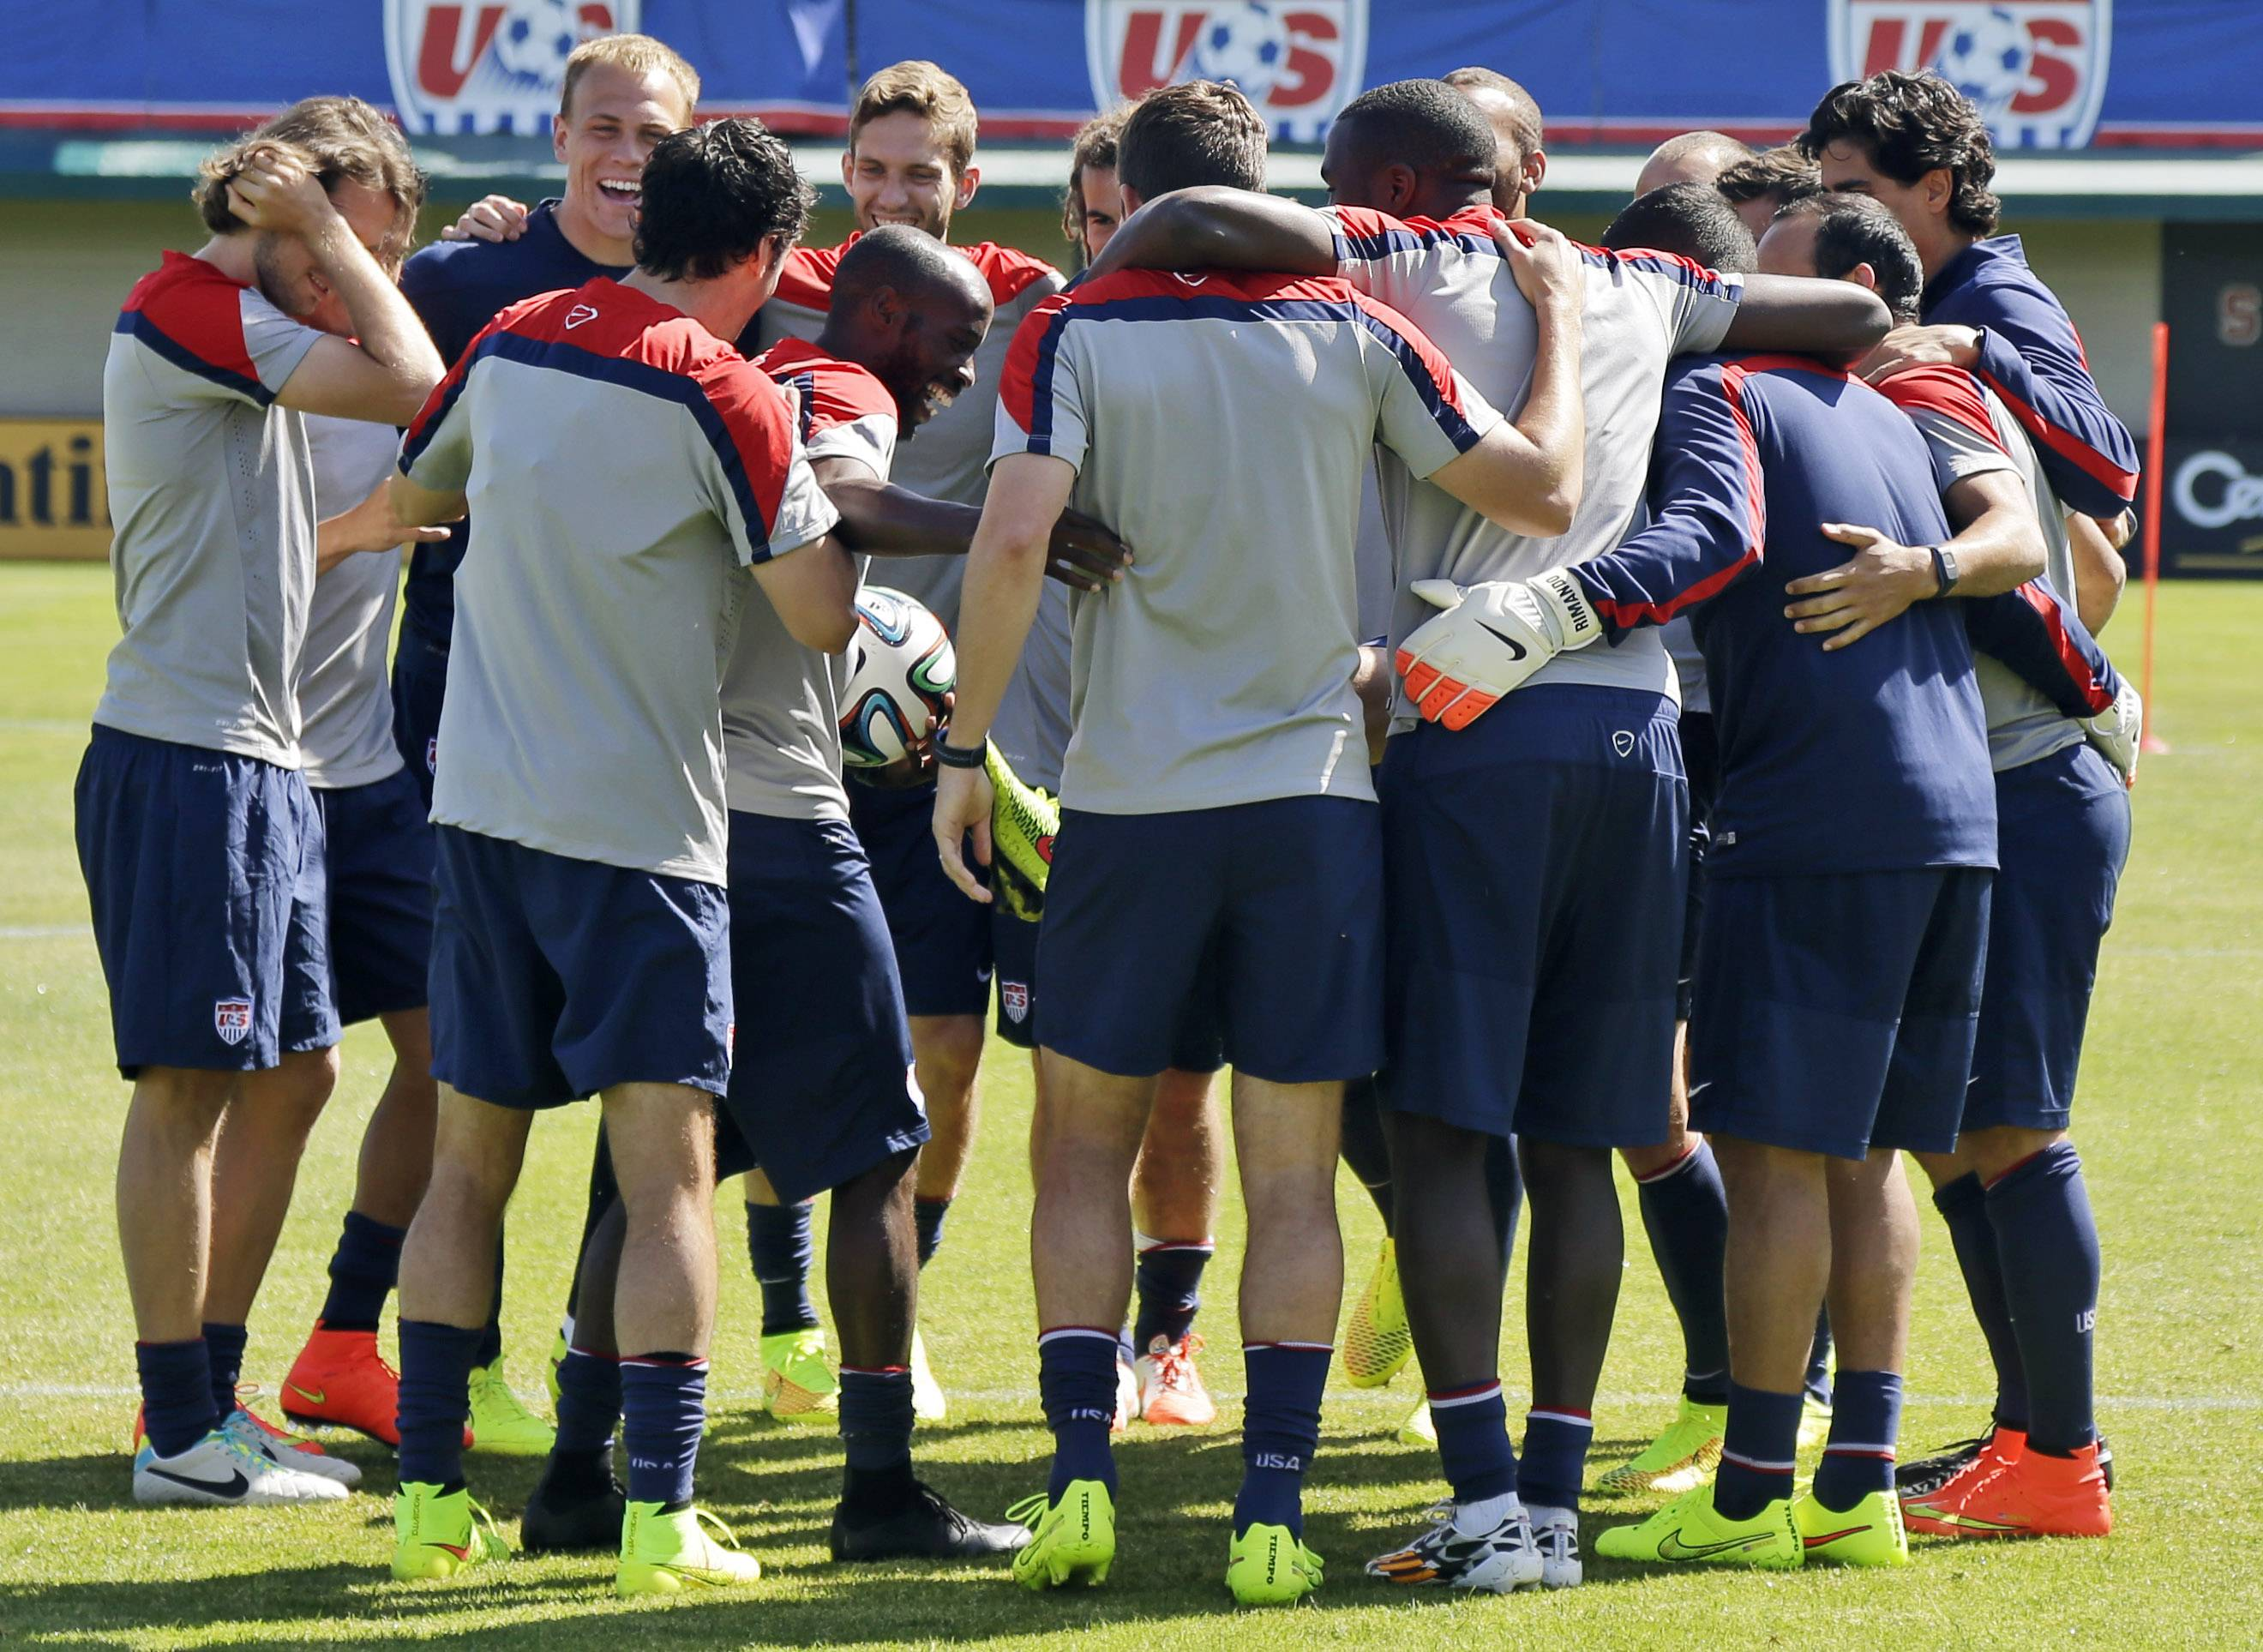 U.S. men's soccer team members embrace during training in preparation for the World Cup. The team will play Turkey in a friendly Sunday in New Jersey before heading to Florida to practice in steamier conditions and the World Cup in Brazil.